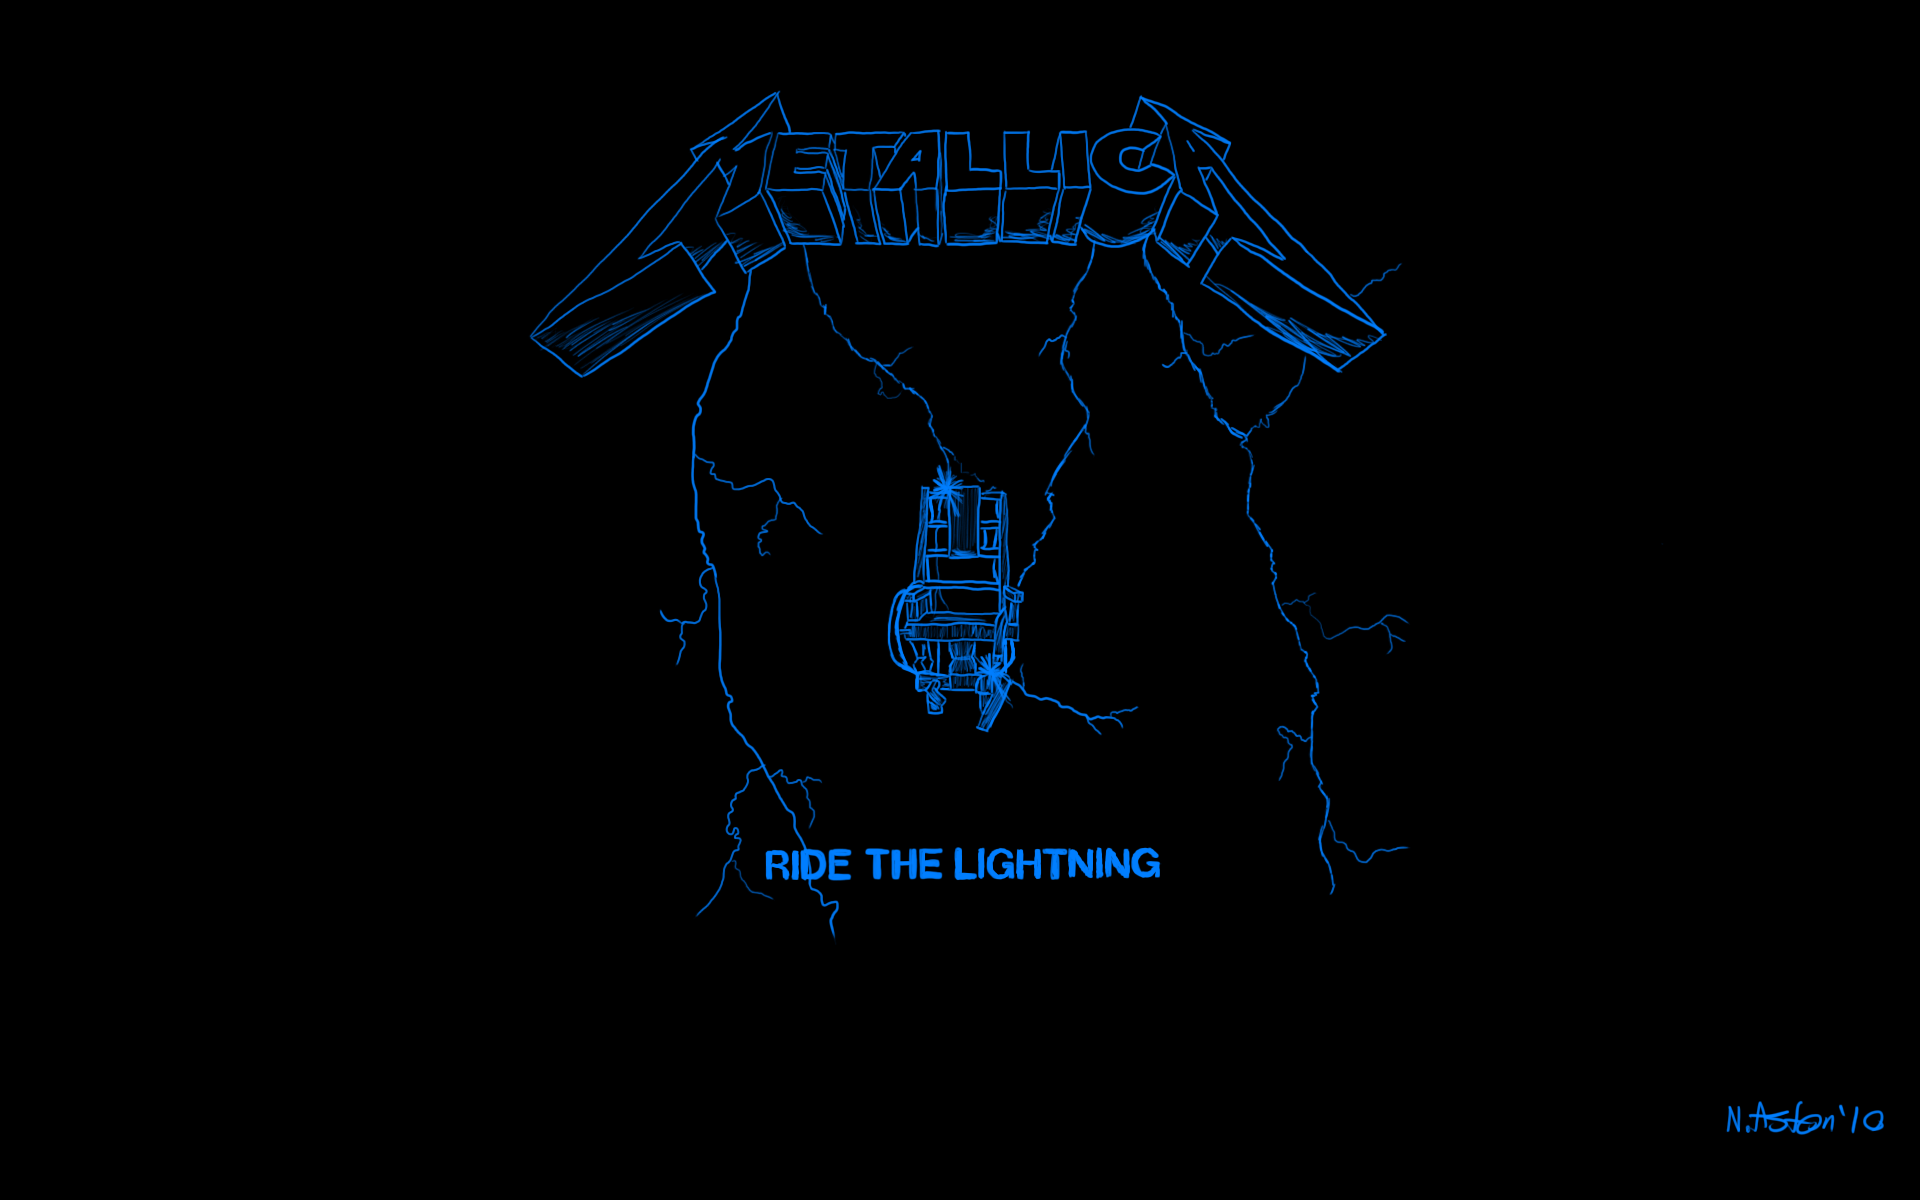 Ride The Lightning Wallpaper by nige111 1920x1200